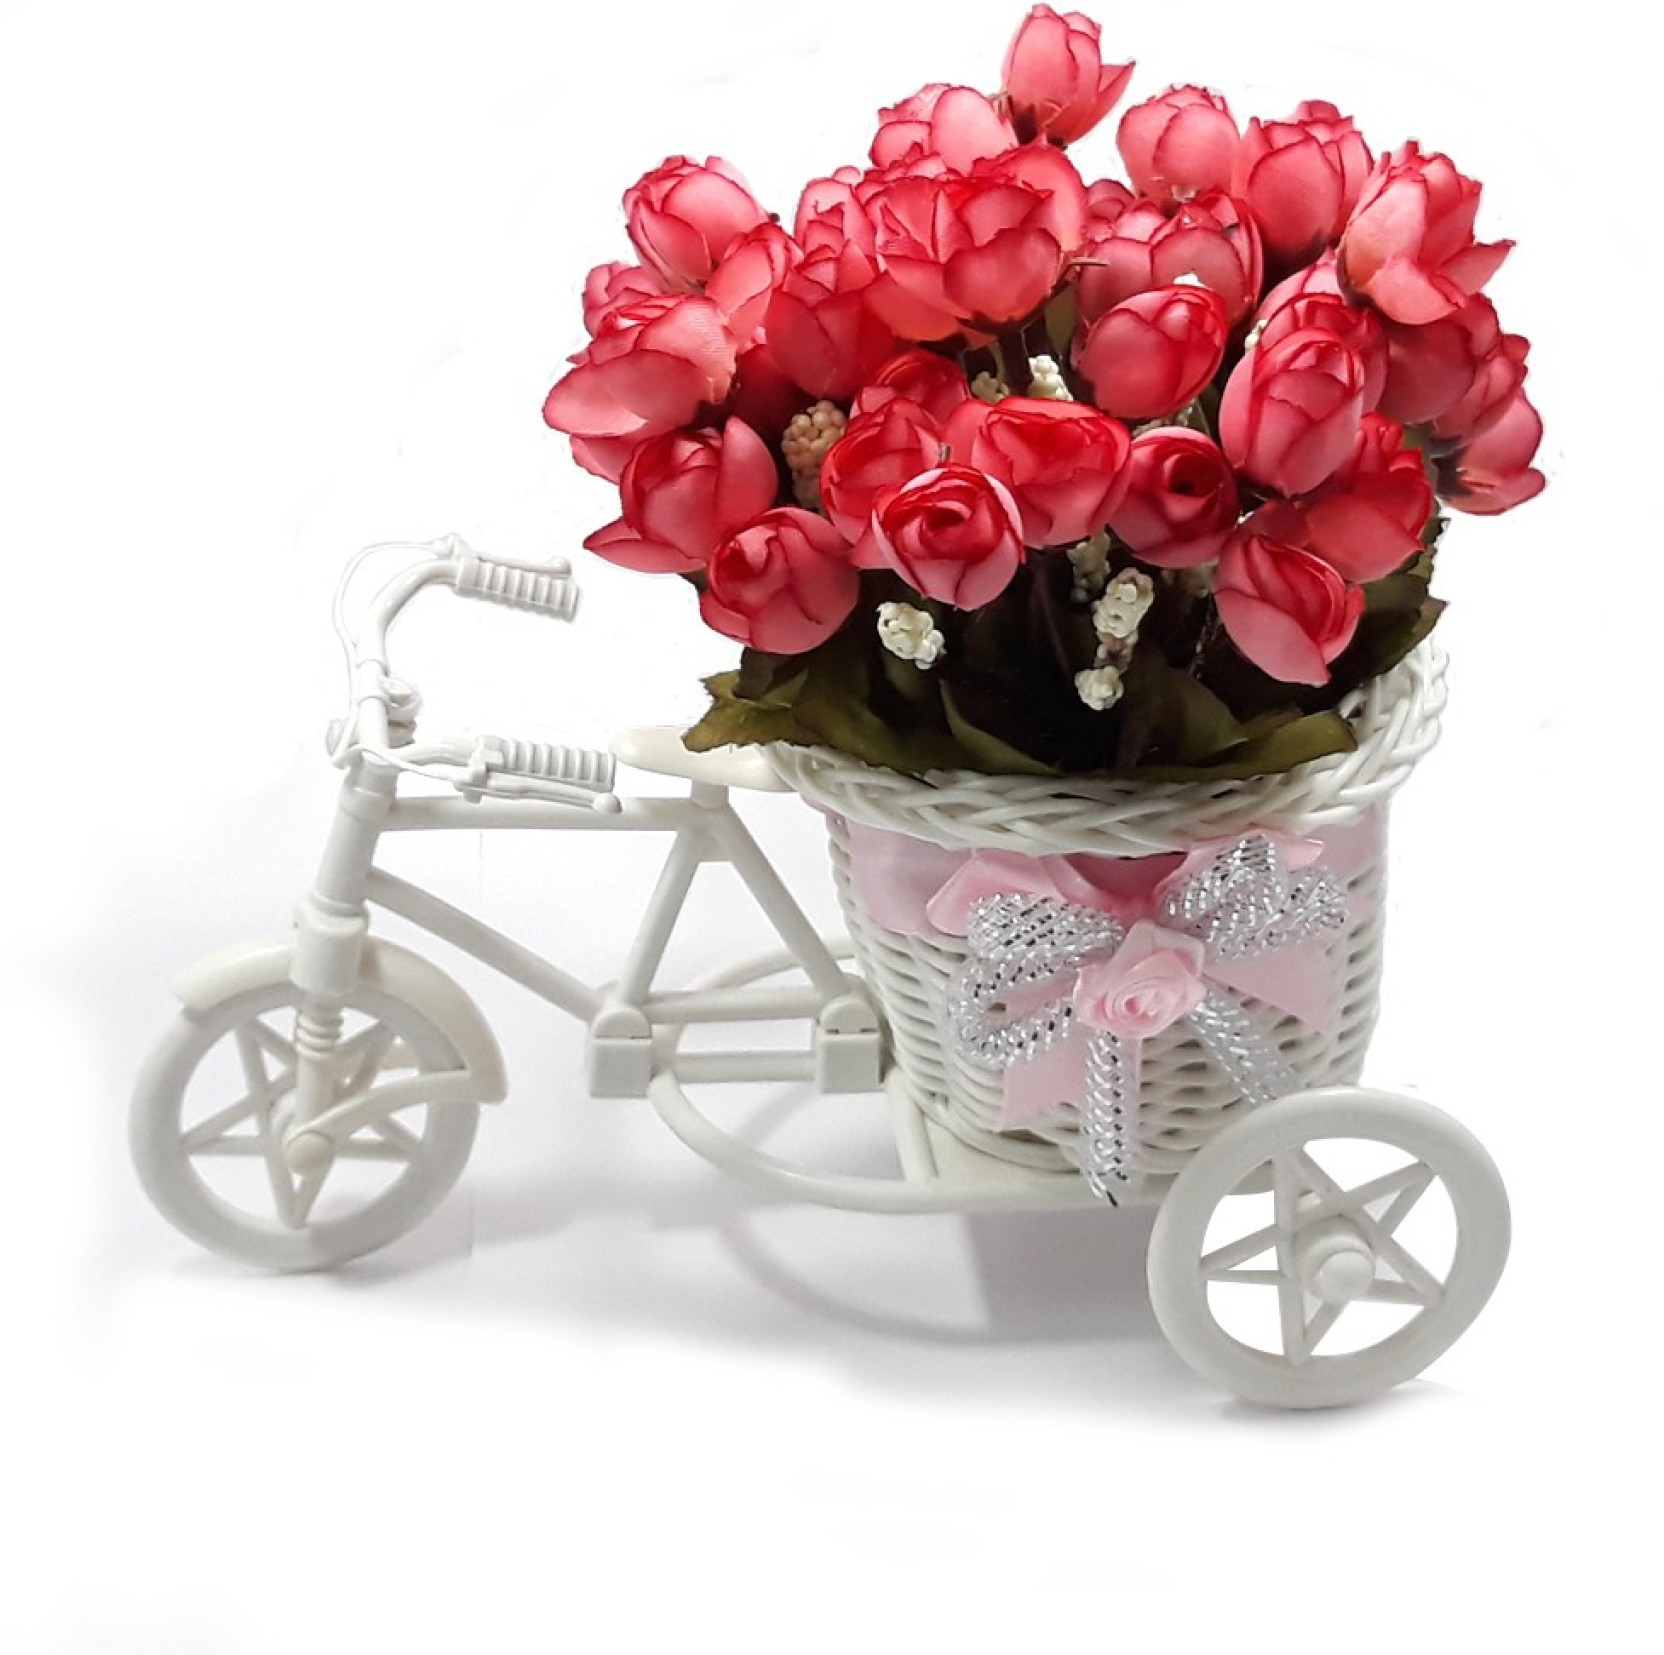 Lof Beautiful Flower Basket With Greeting Card For Girlfriend And